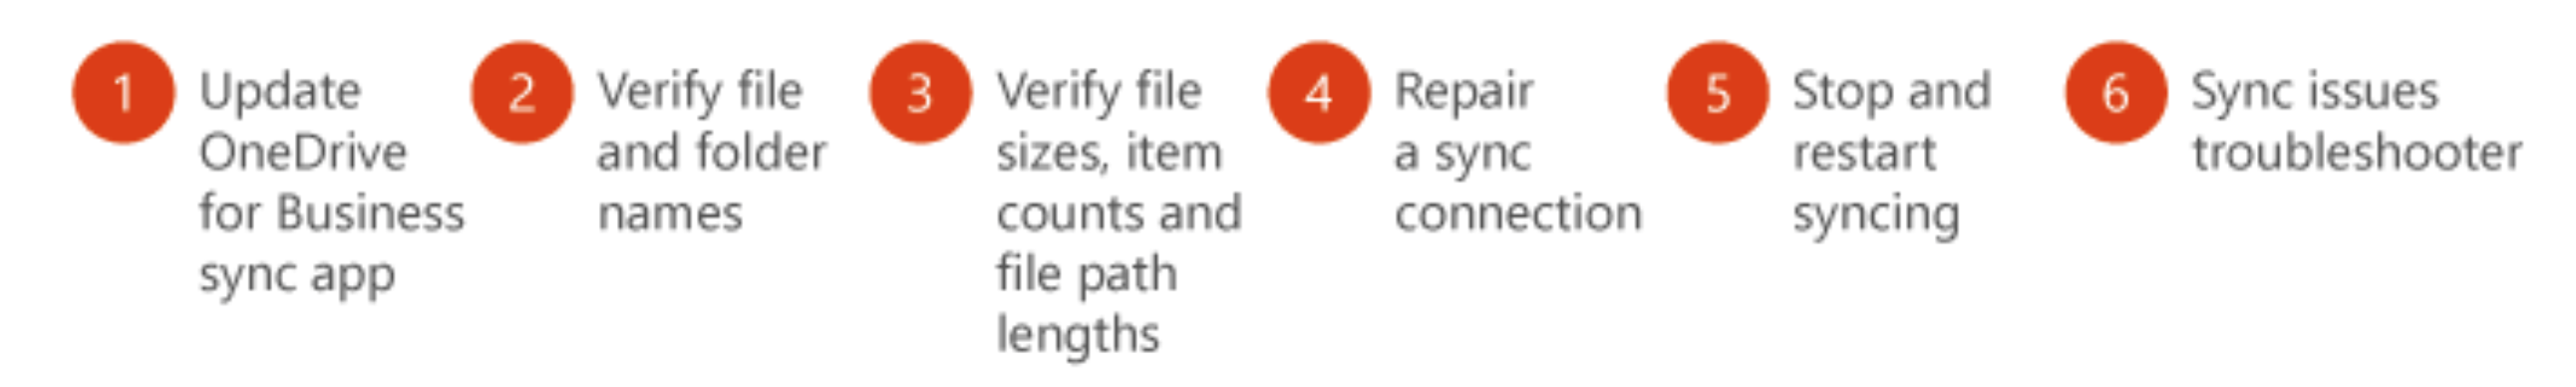 Office 365 - OneDrive for Business - Fixing sync problems